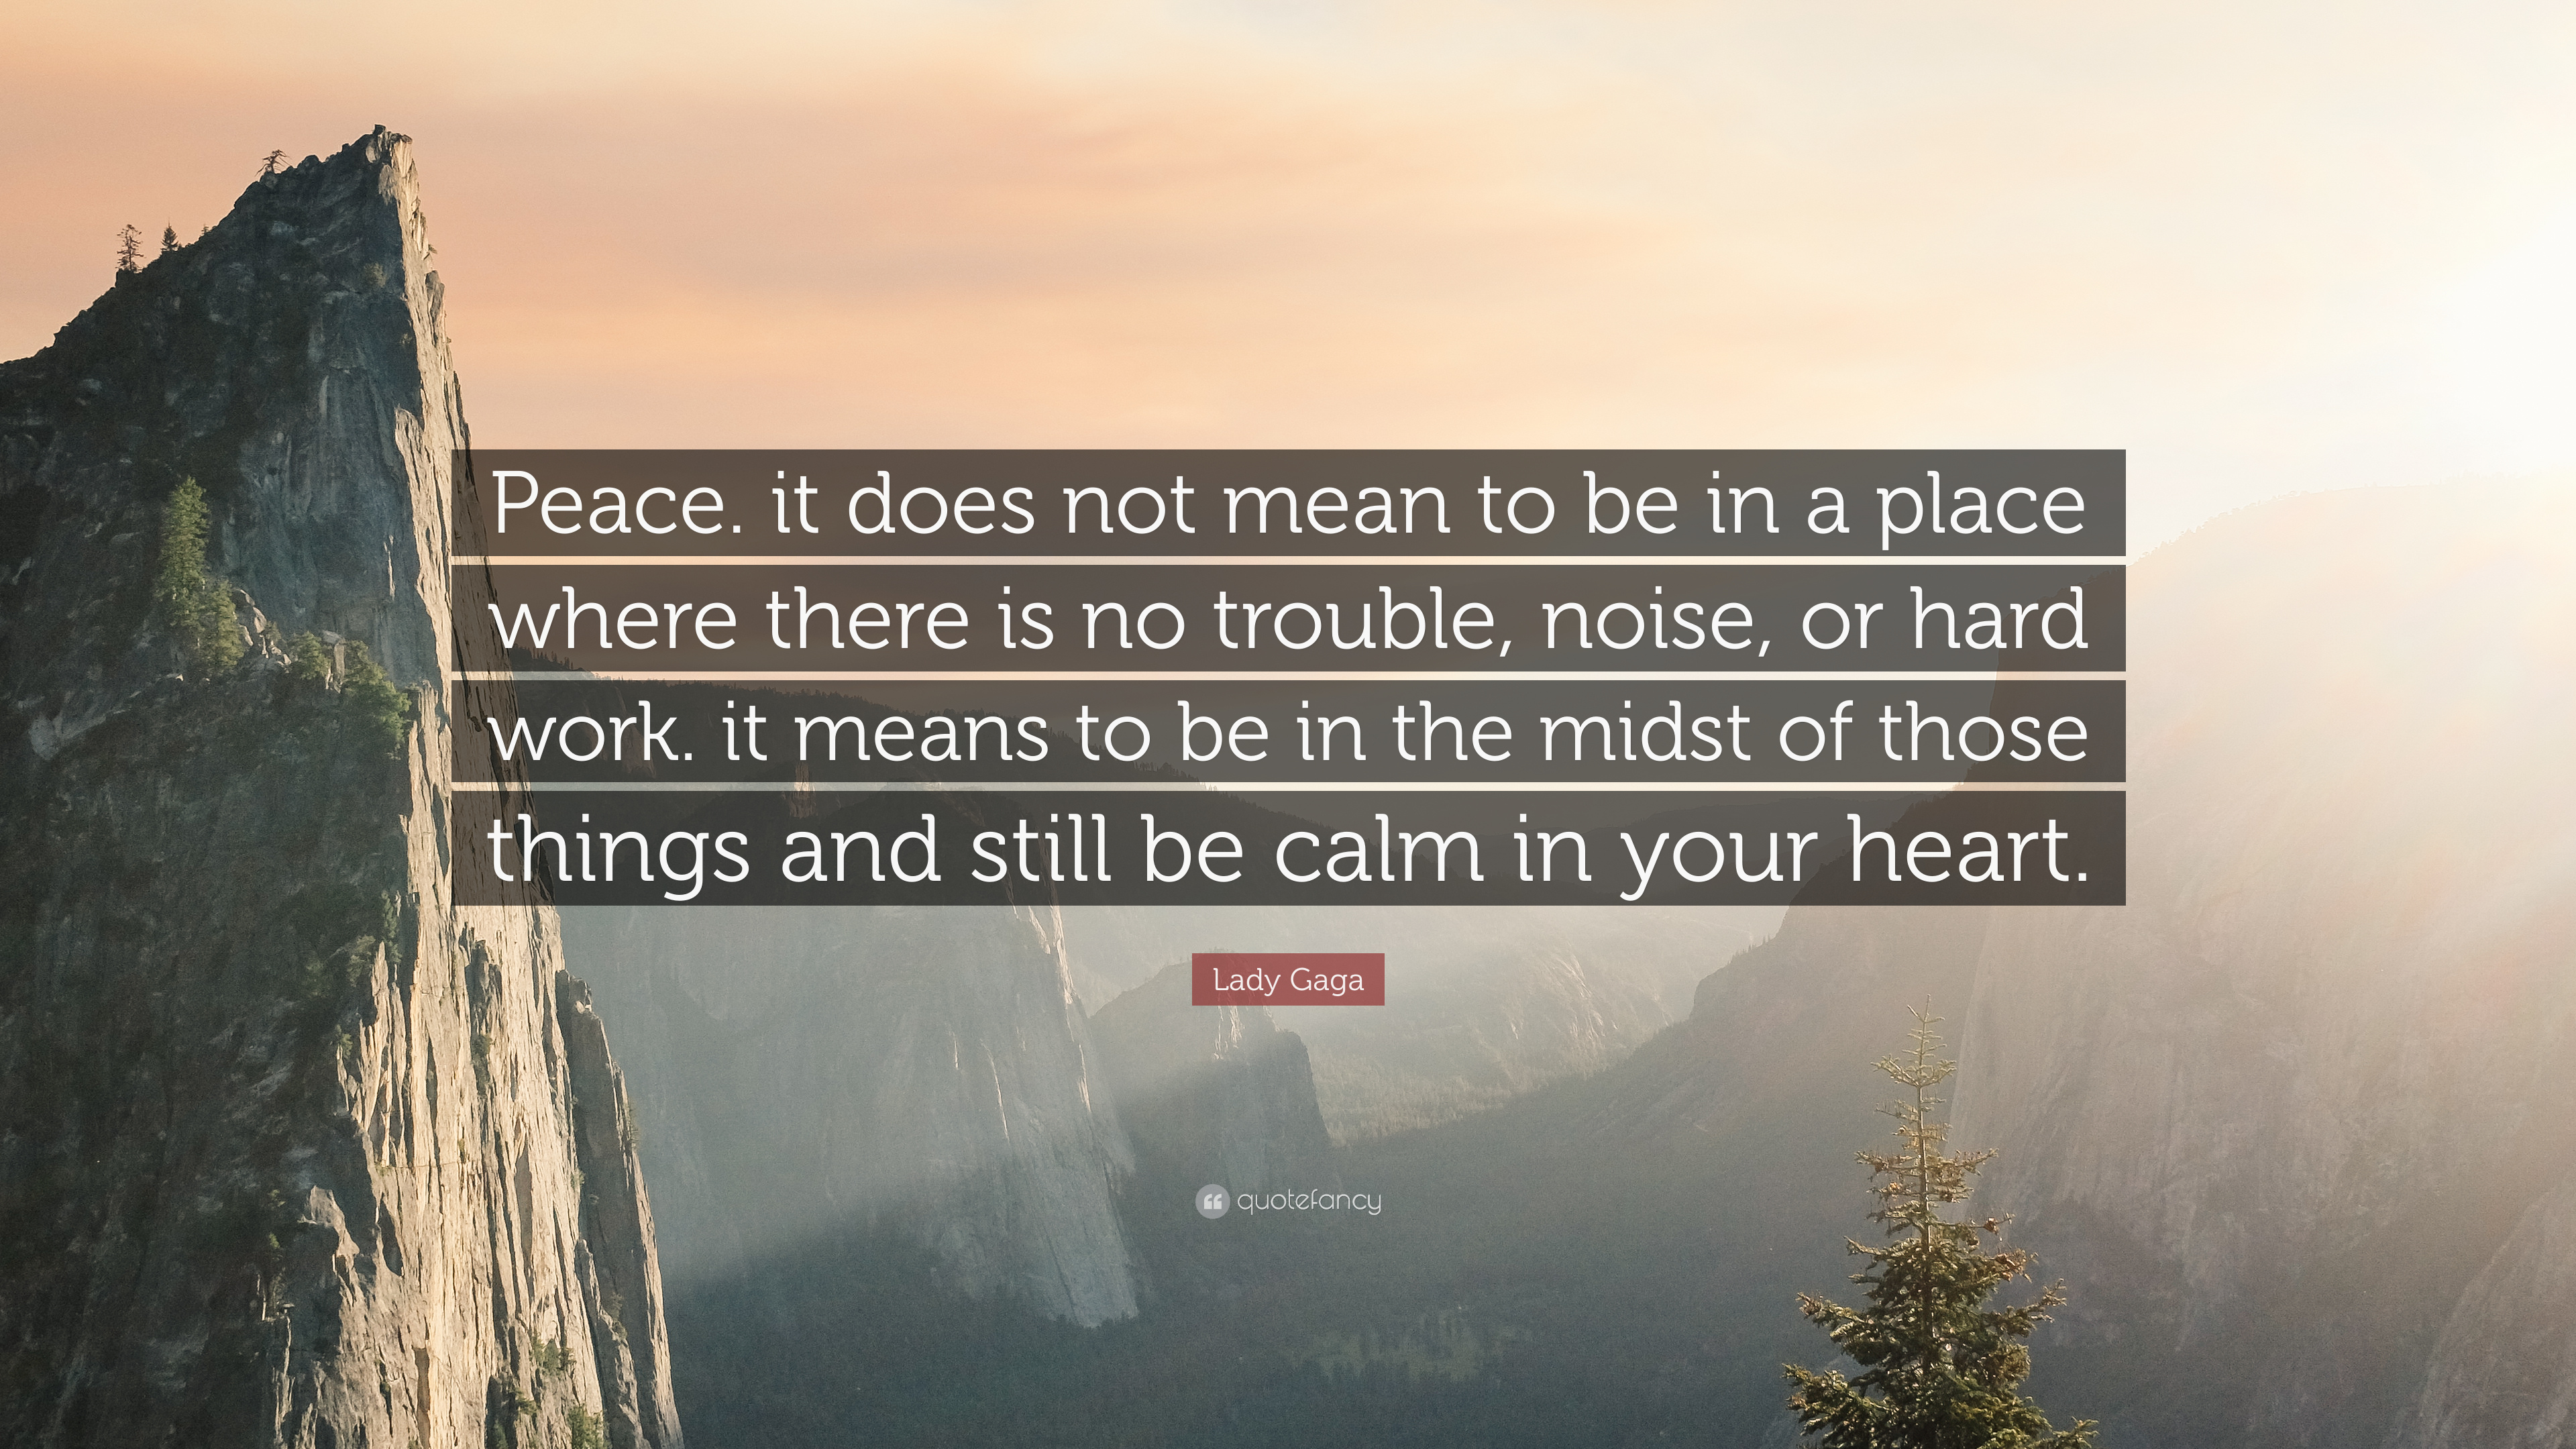 Lady Gaga Quote Peace It Does Not Mean To Be In A Place Where There Is No Trouble Noise Or Hard Work It Means To Be In The Midst Of 12